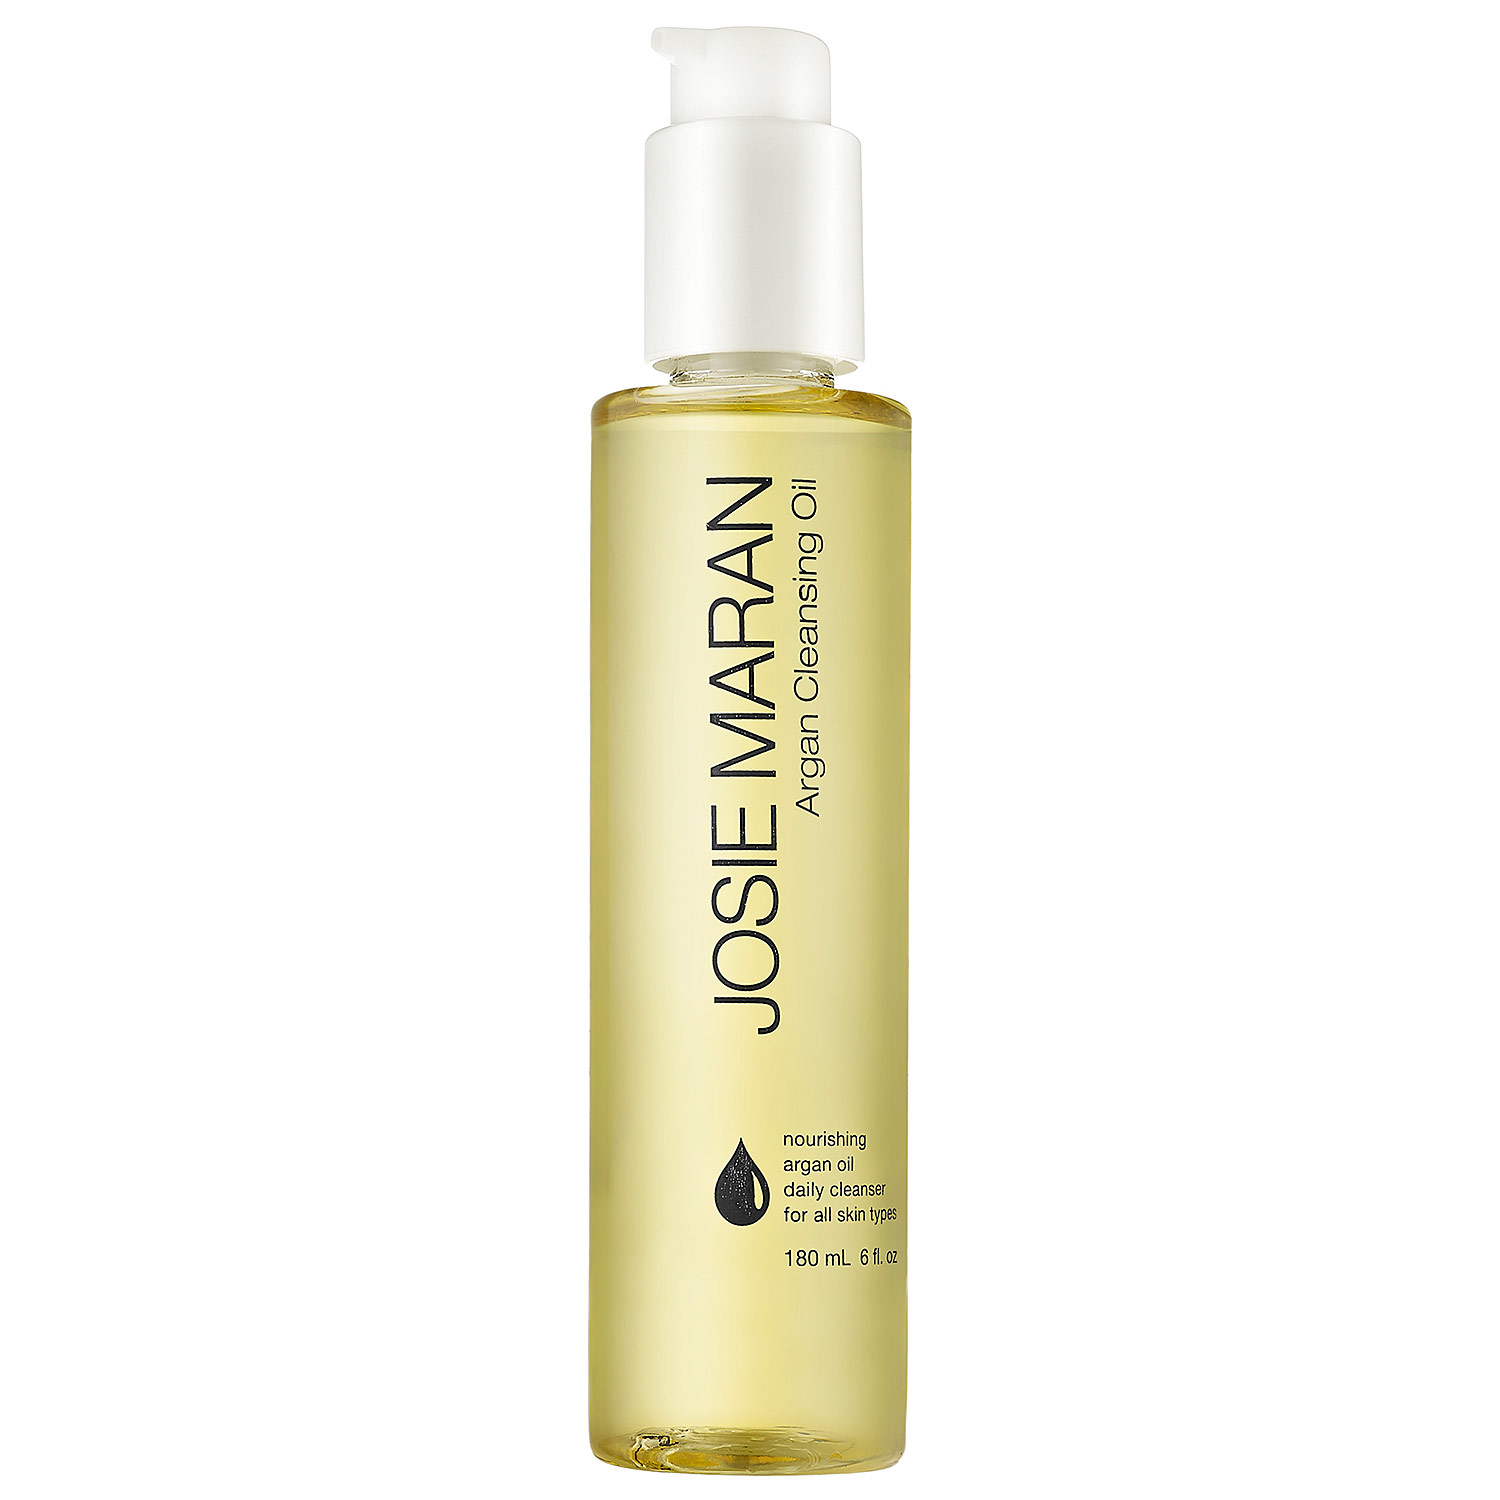 s1324631 main zoom How an All Oil Skin Care Routine Can Give You Clear Skin